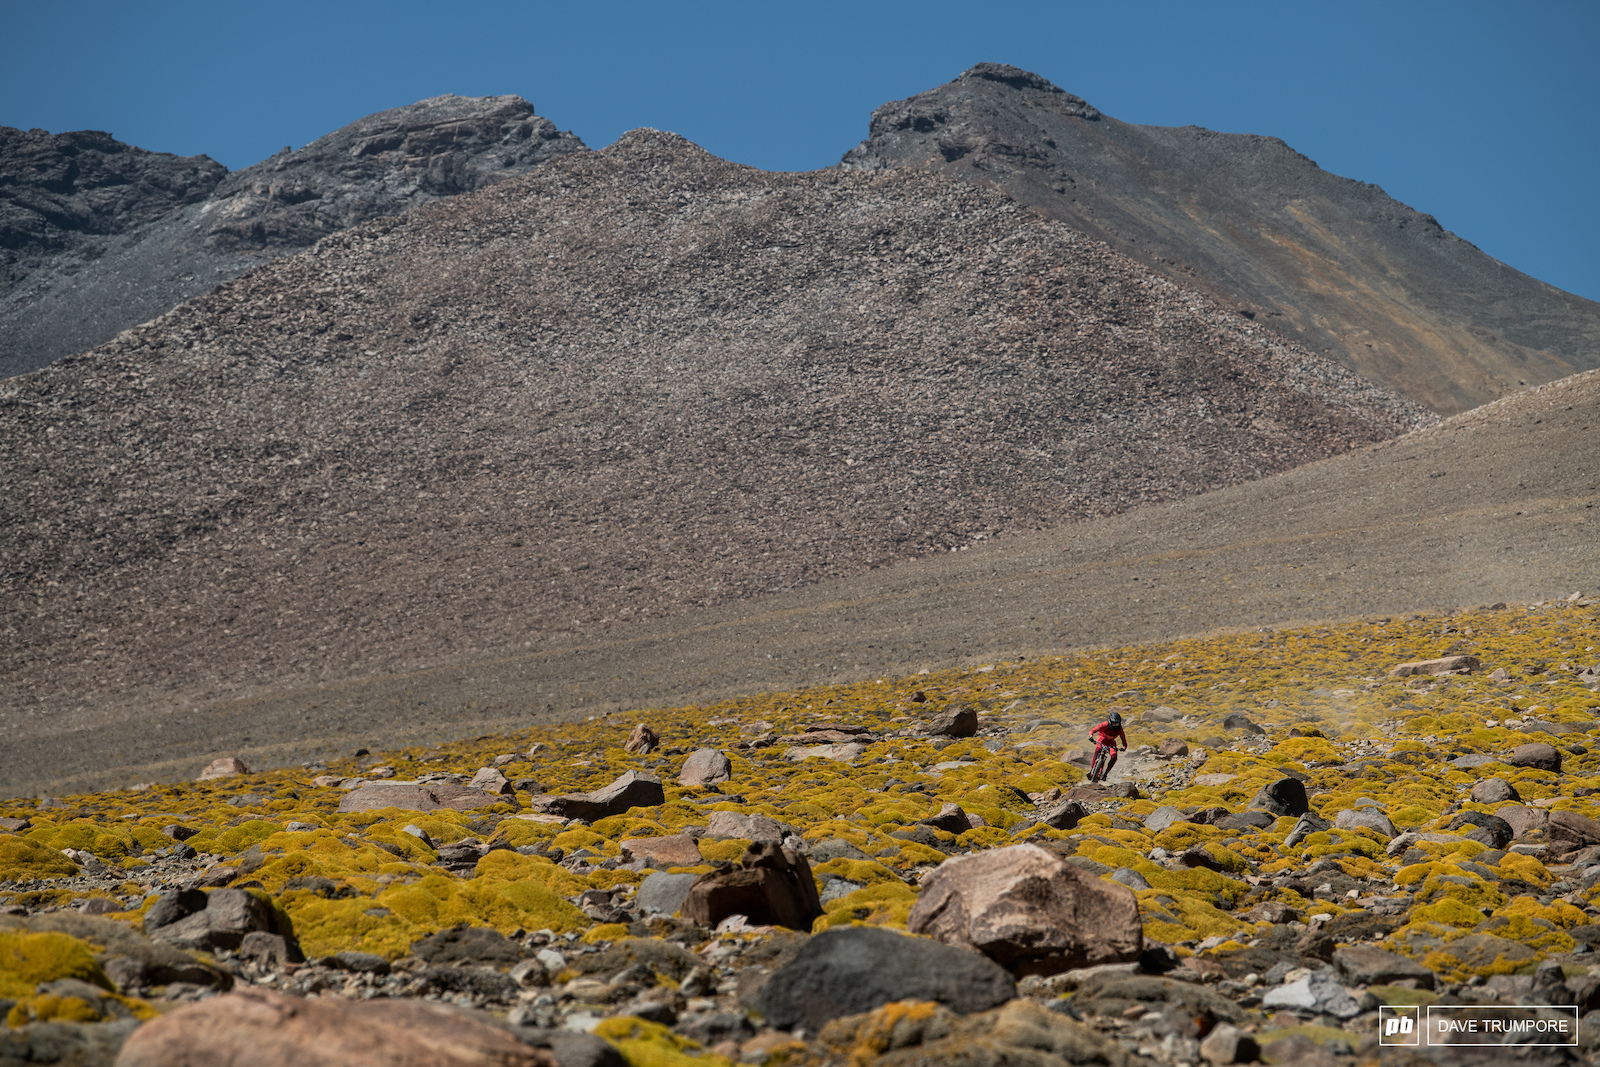 Romain Paulhan through some rare color in the Andes